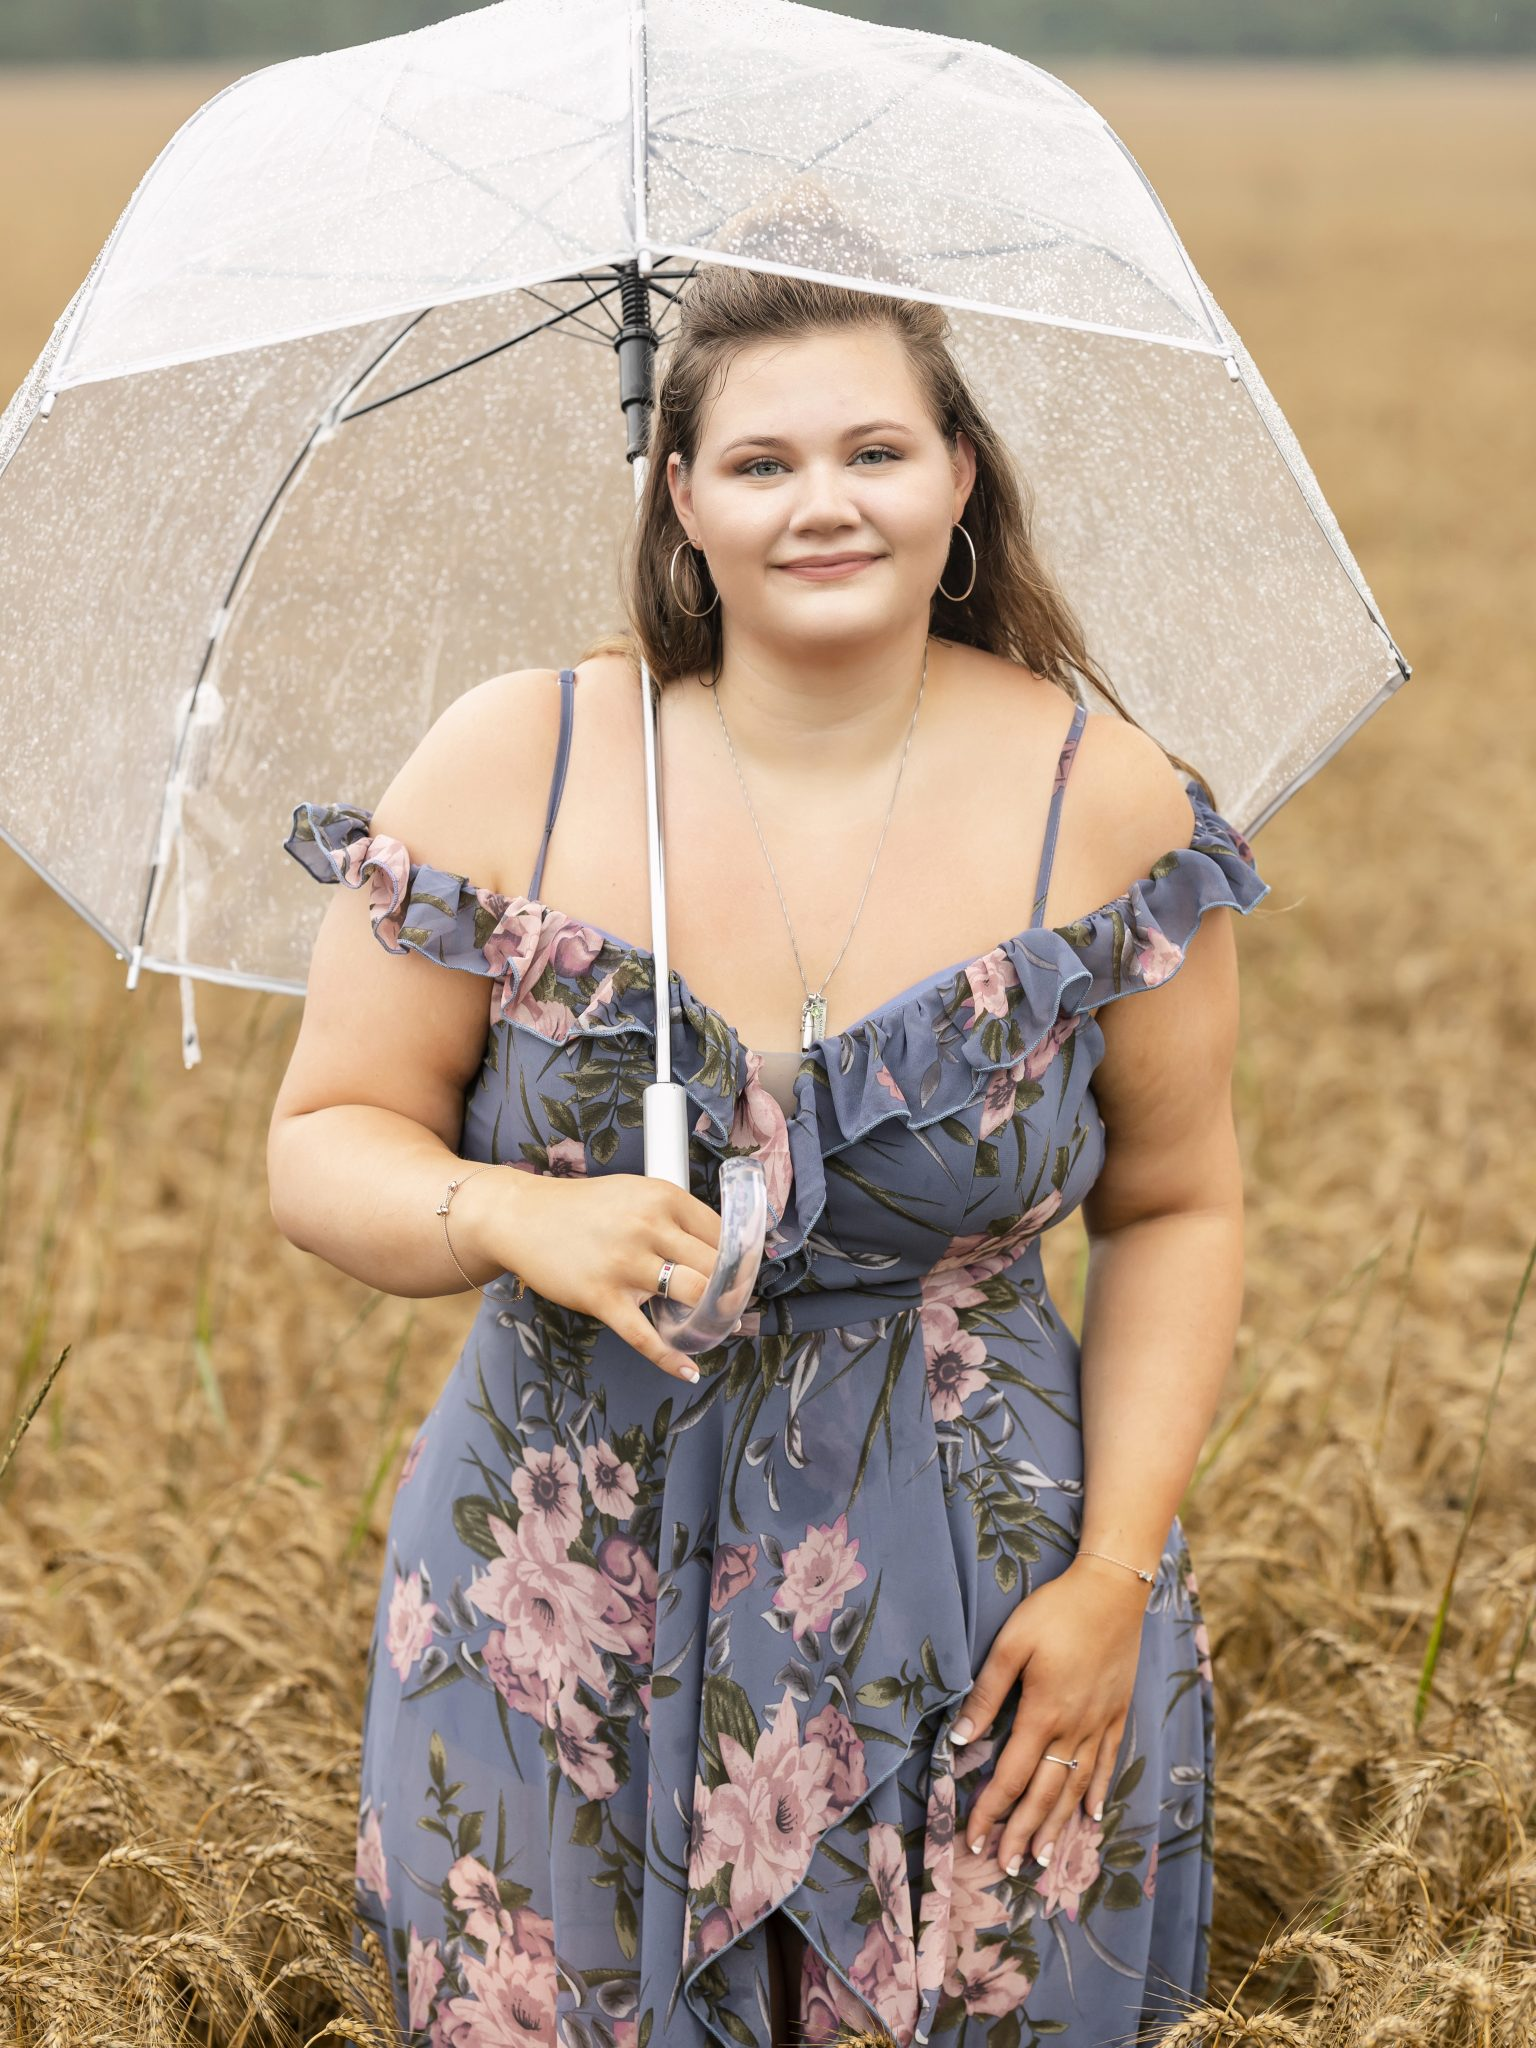 Girl with umbrella standing in a wheat field, long blue floral dress, natural light, portraits, professional portraits, Hilton, NY, Senior Girl pictures, pictures in the rain